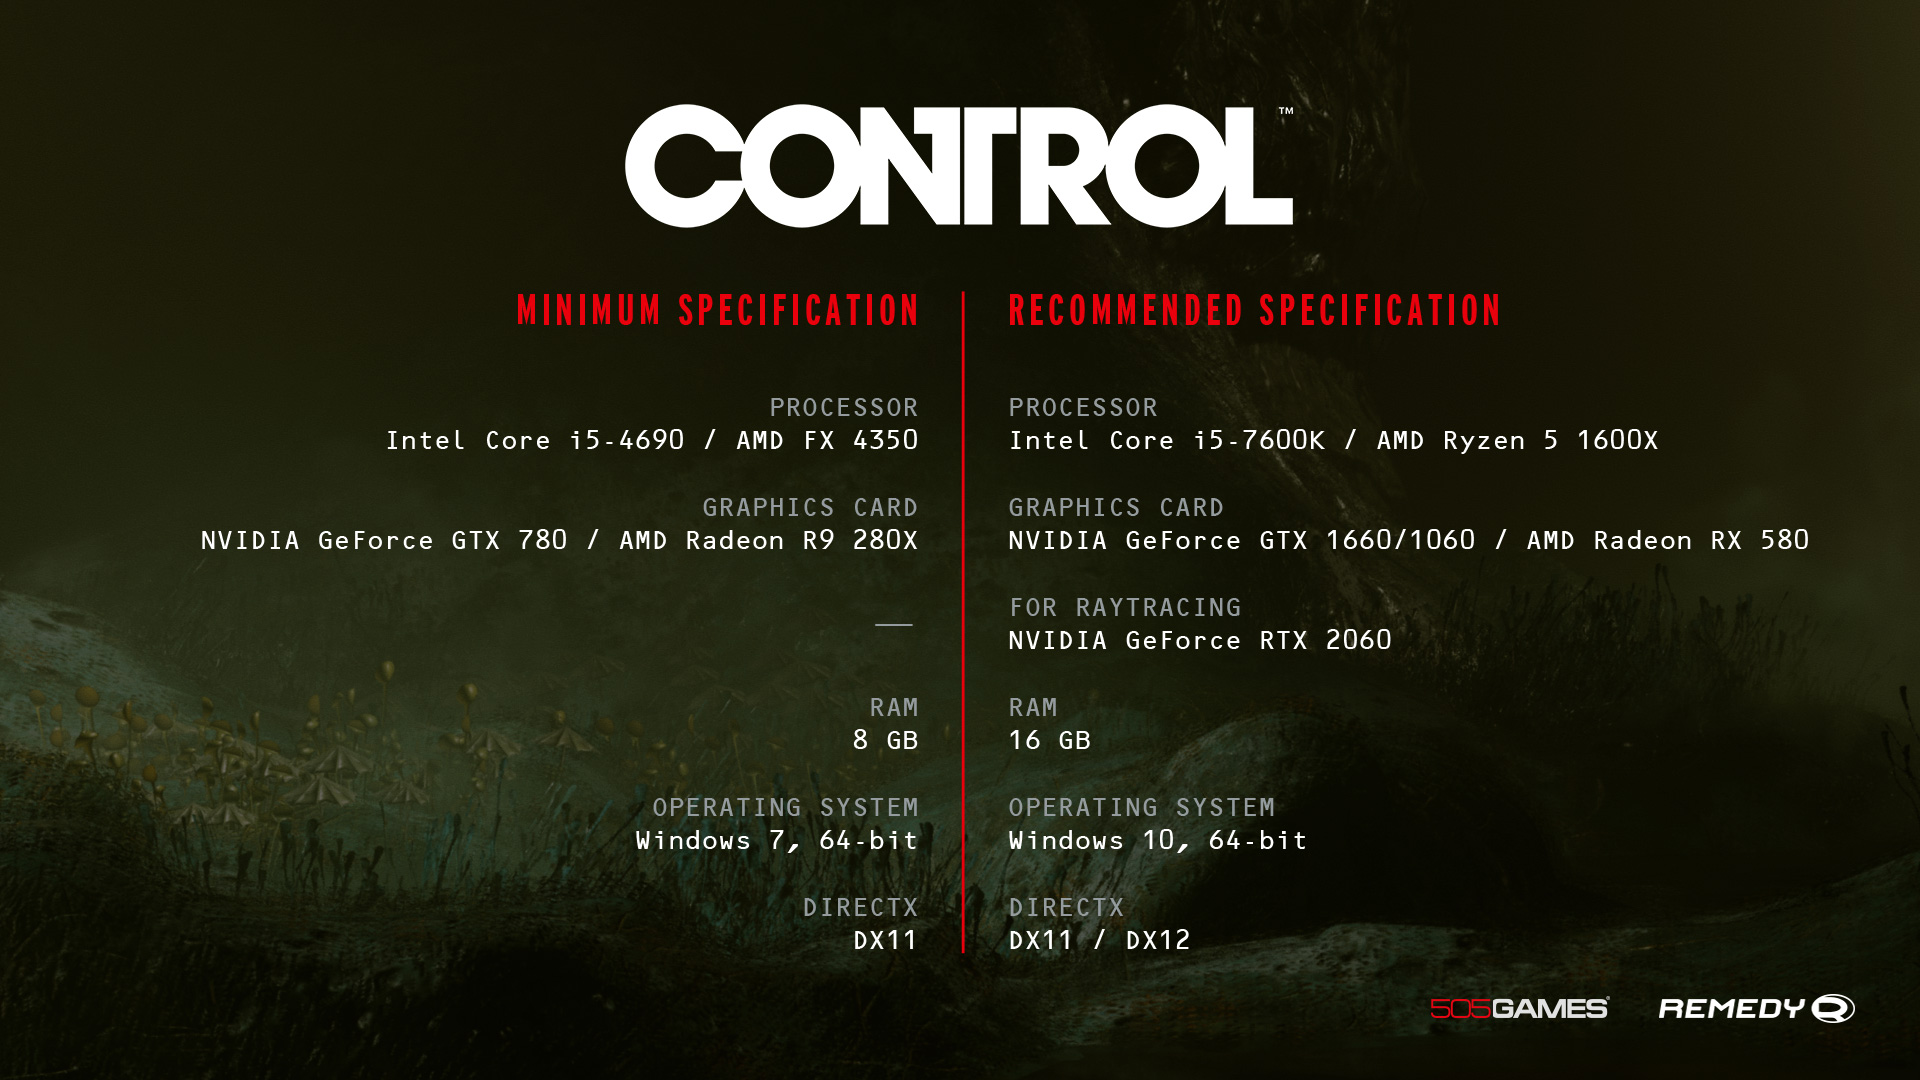 Remedy's Control PC specs have been revealed